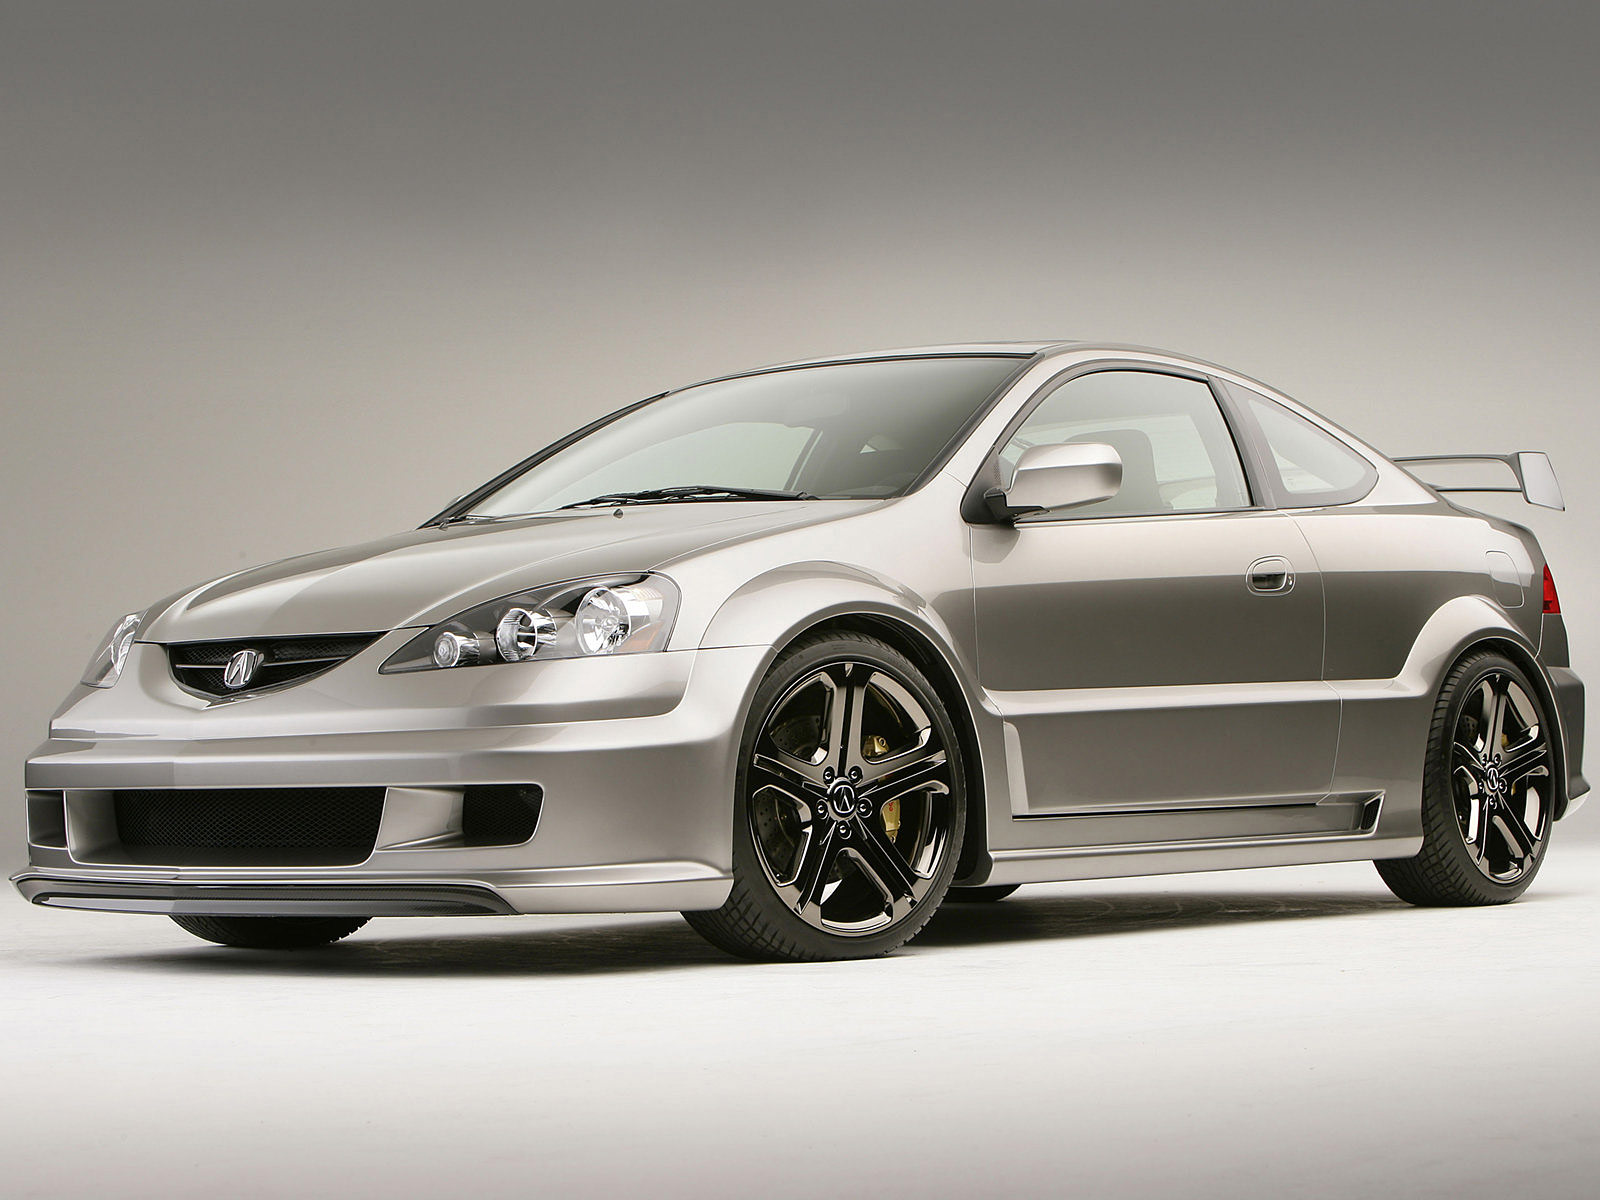 2005 ACURA RSX-A Spec Concept photos, wallpapers